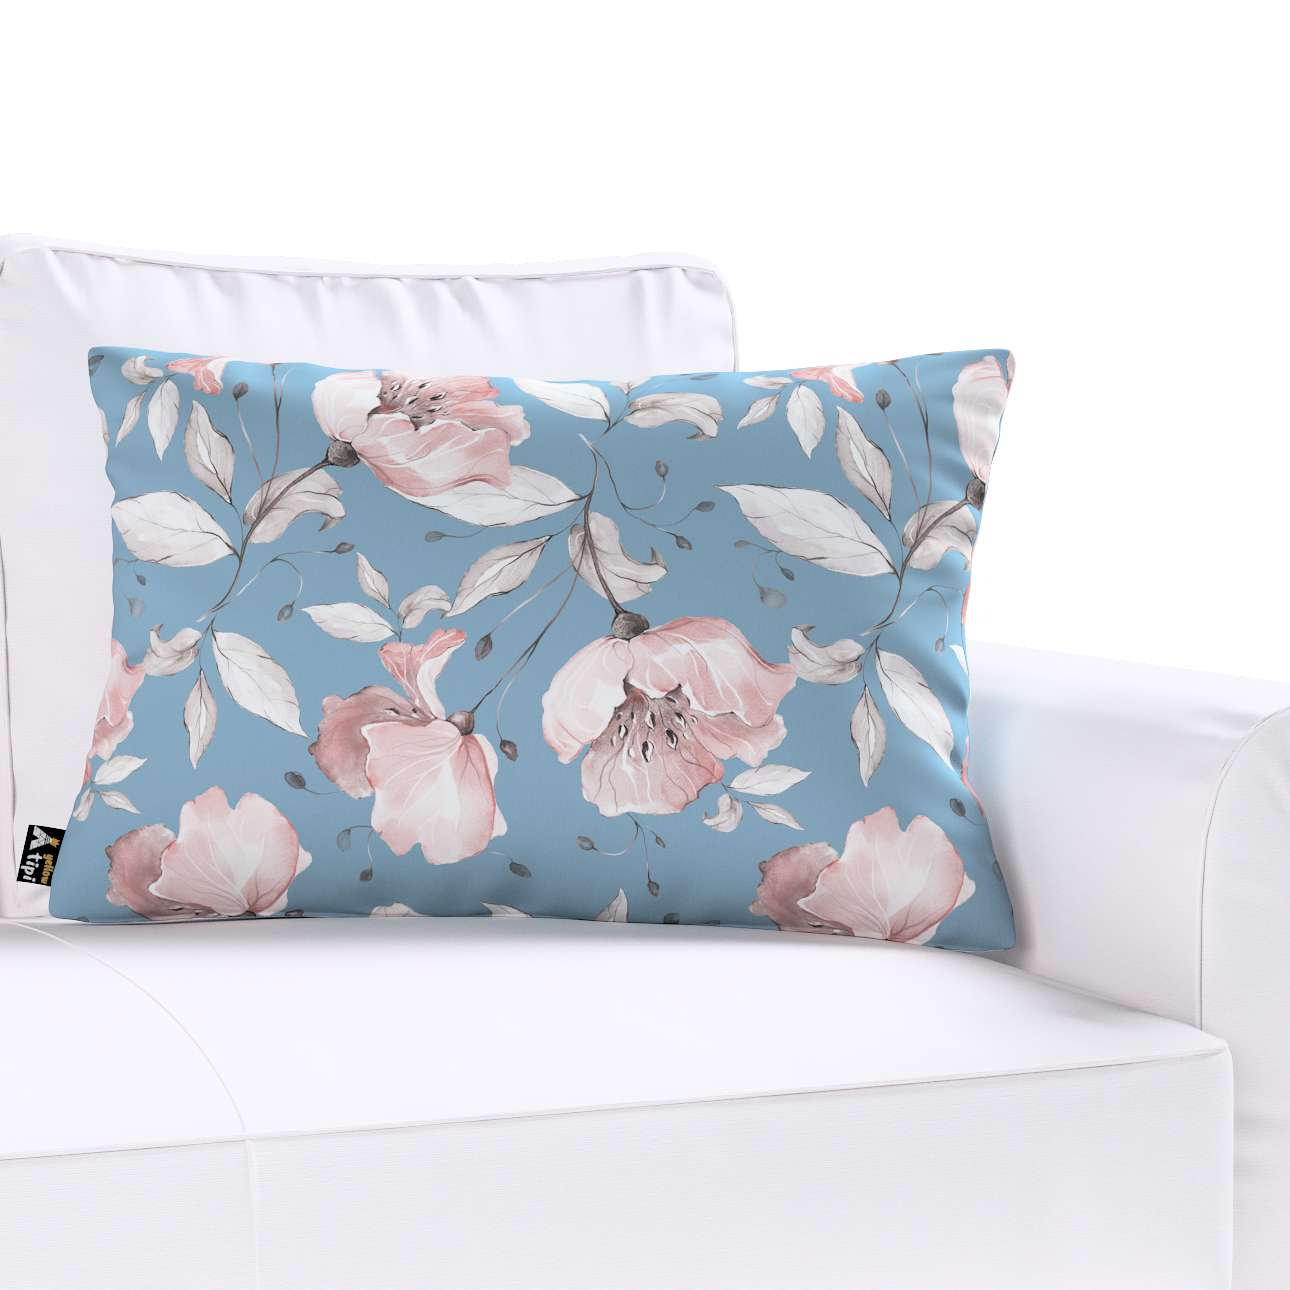 Milly rectangular cushion cover in collection Magic Collection, fabric: 500-18